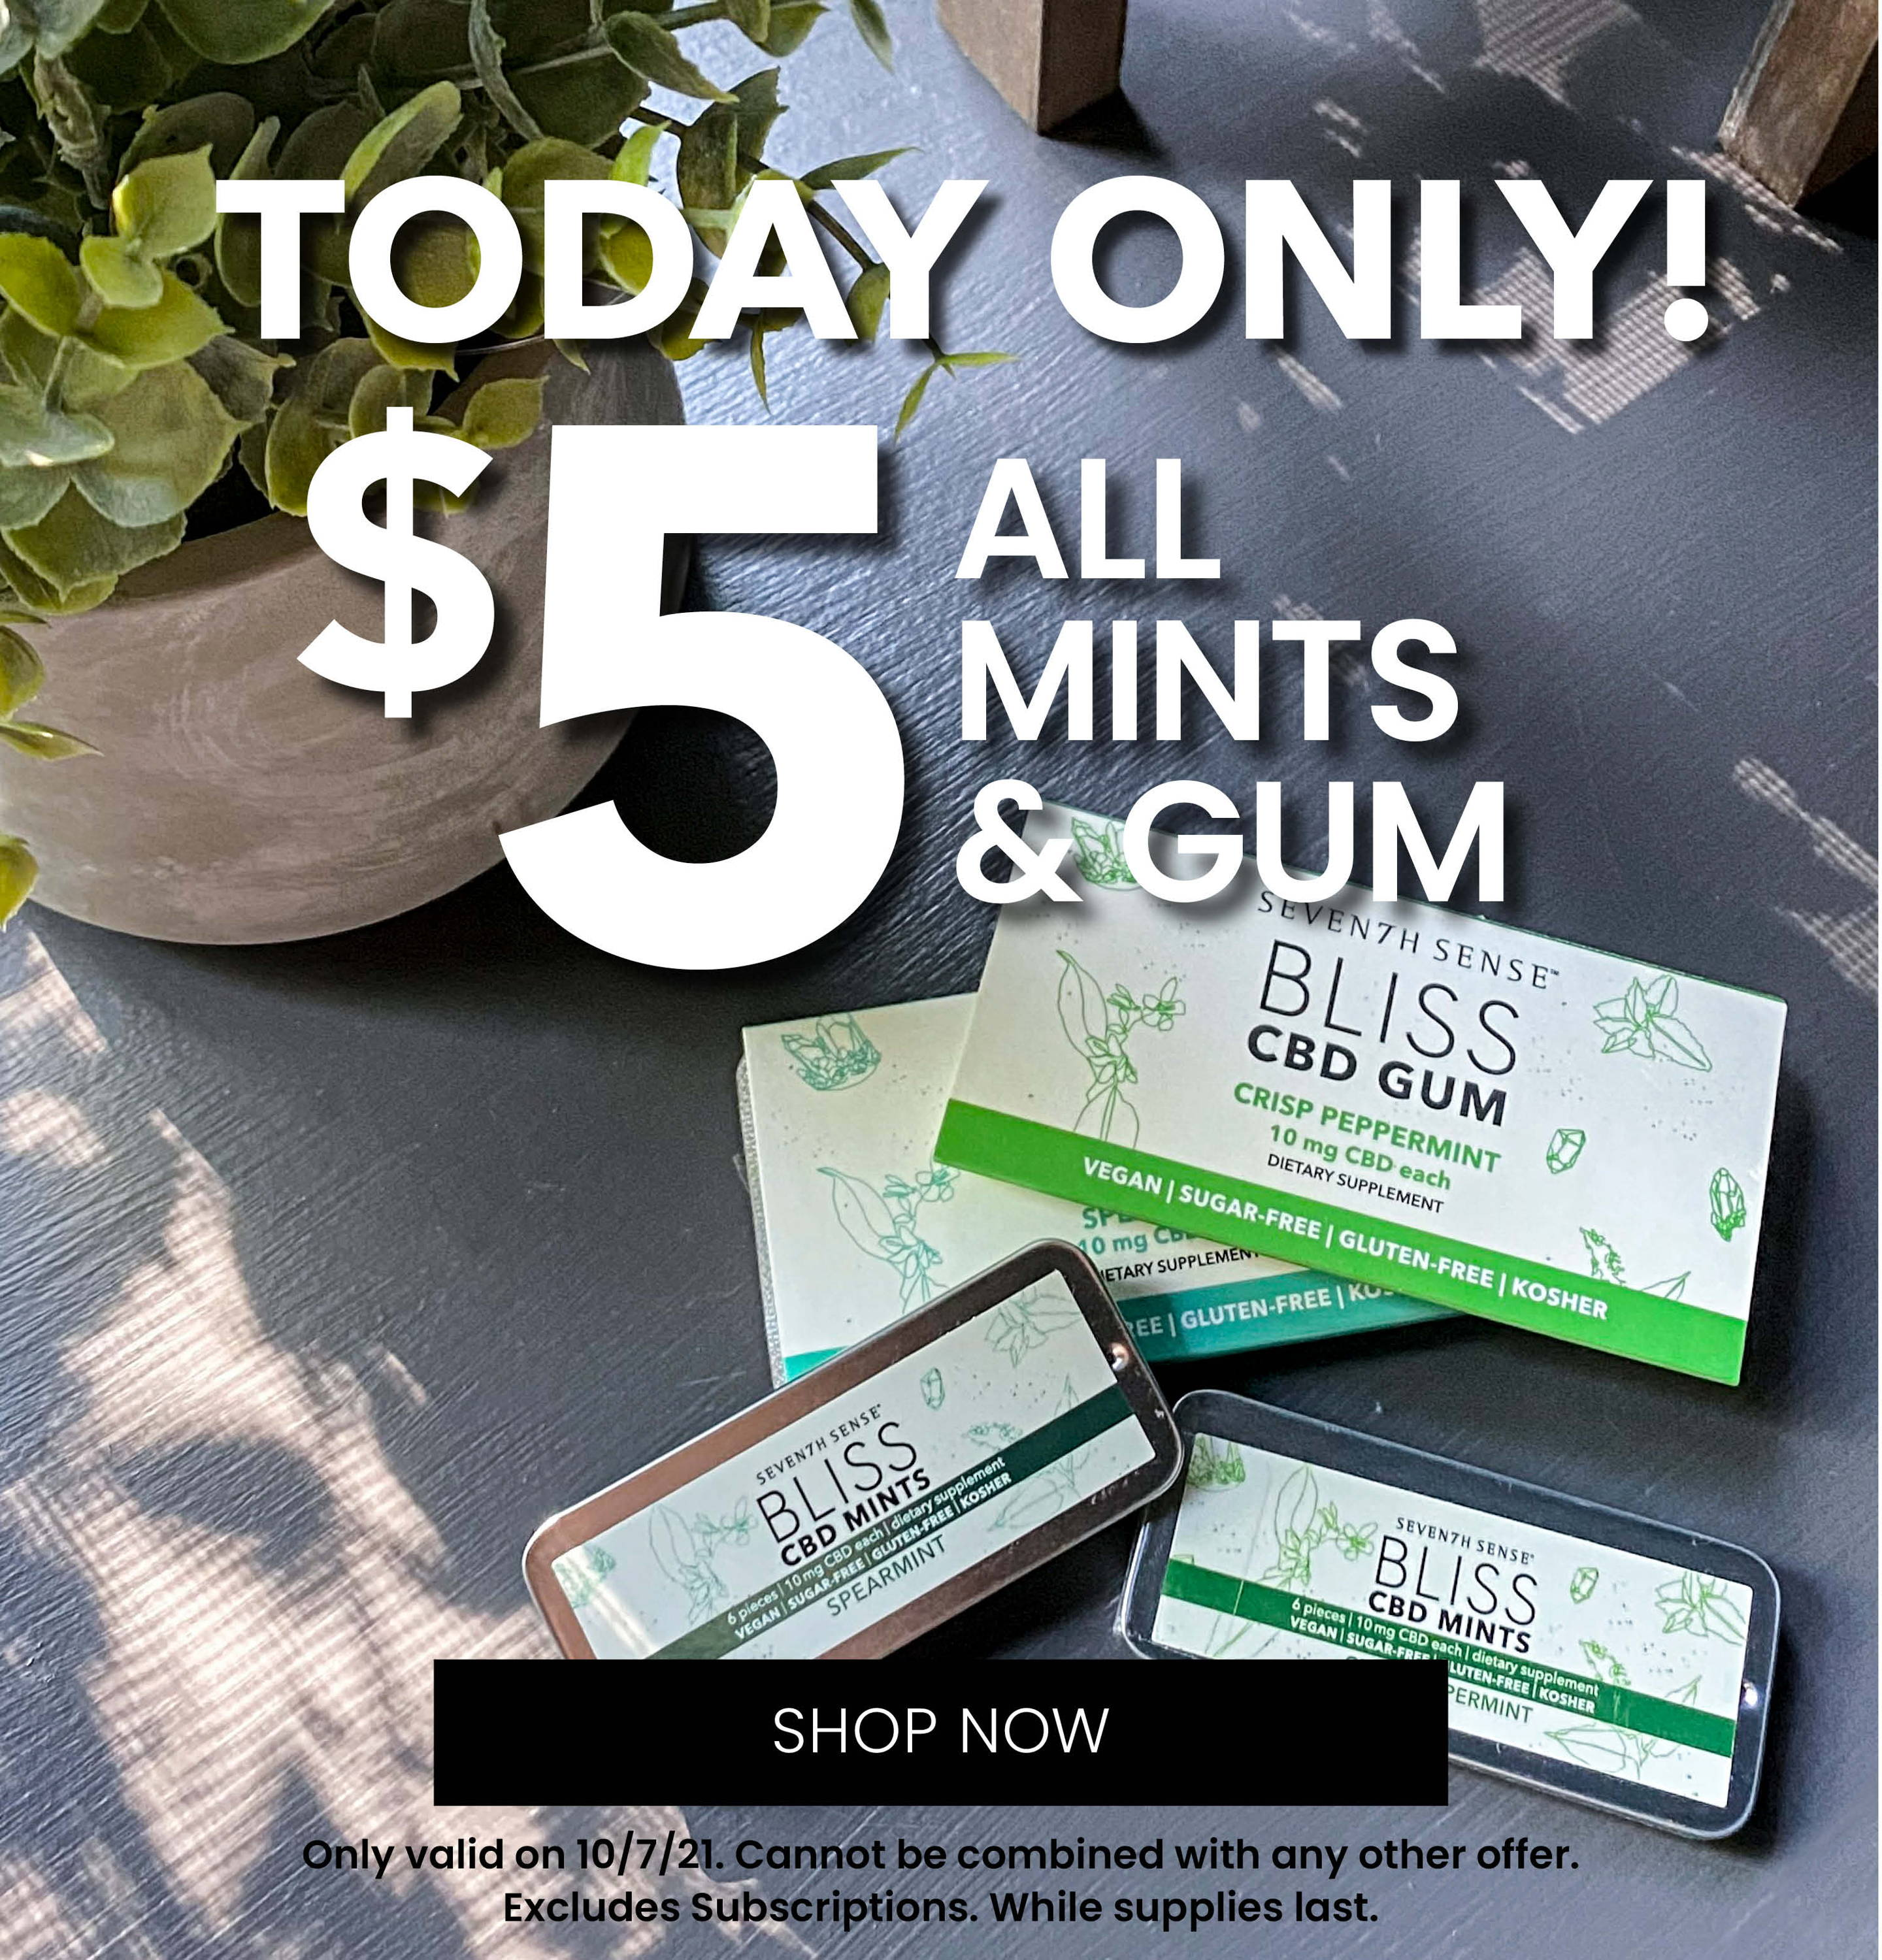 Today Only! 5 Dollar Gum and Mints